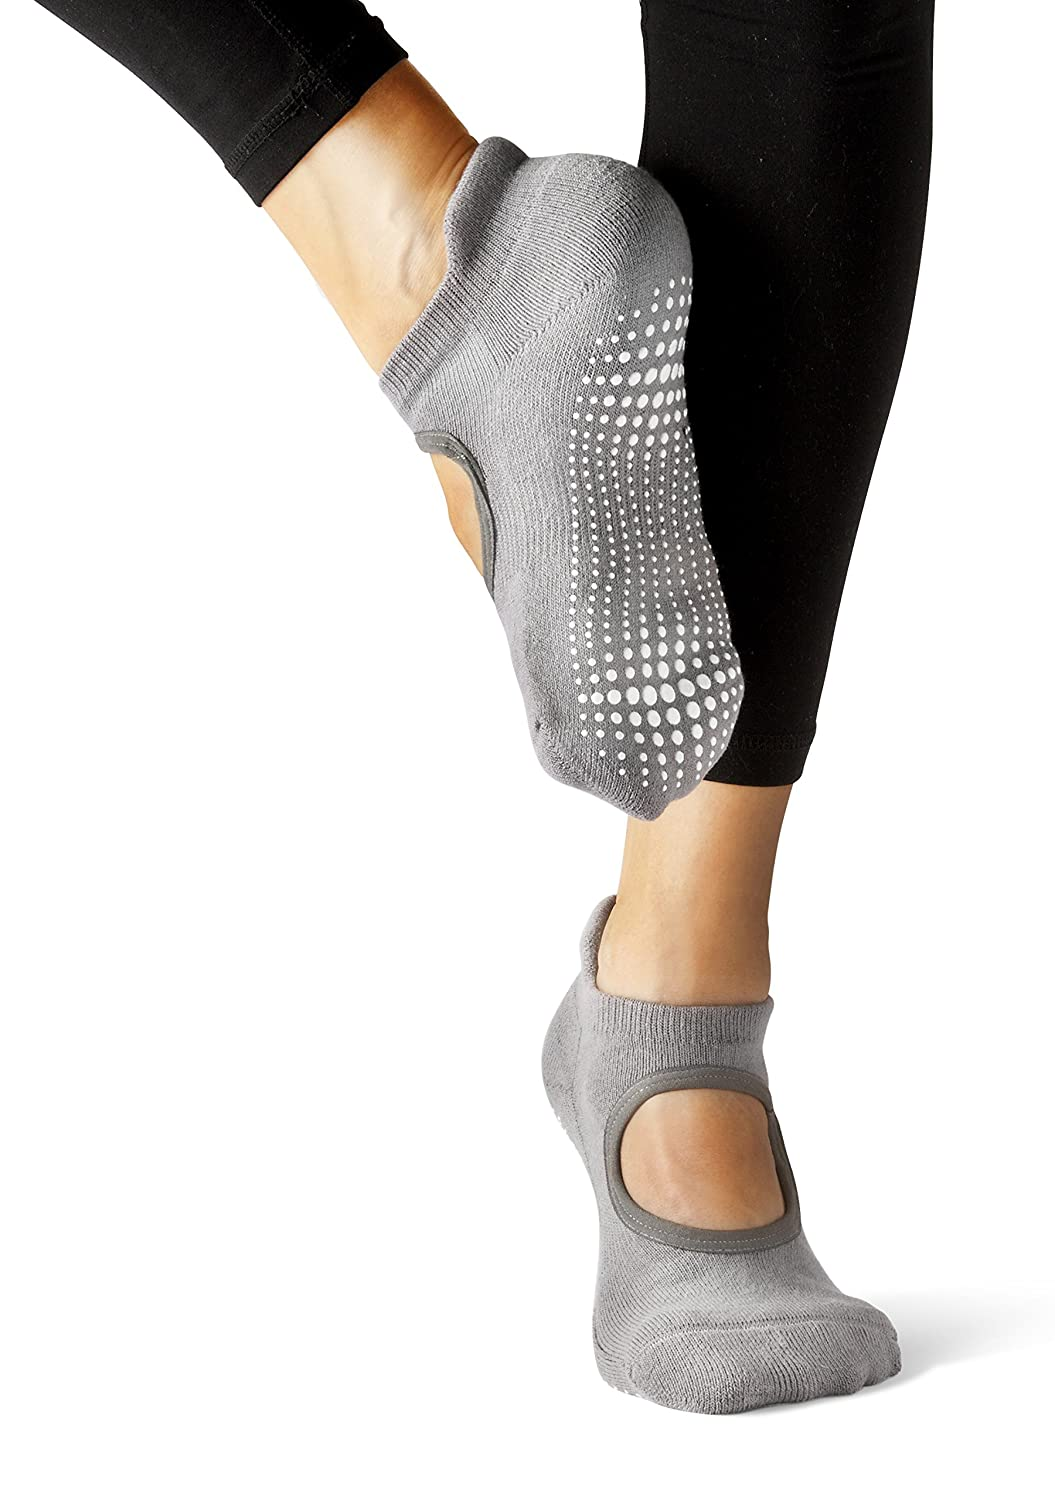 Amazon.com: LA Active Grip Socks - 2 Pairs - Yoga Pilates Barre Ballet Non Slip, Powder Grey/Noire Black, Medium: Clothing